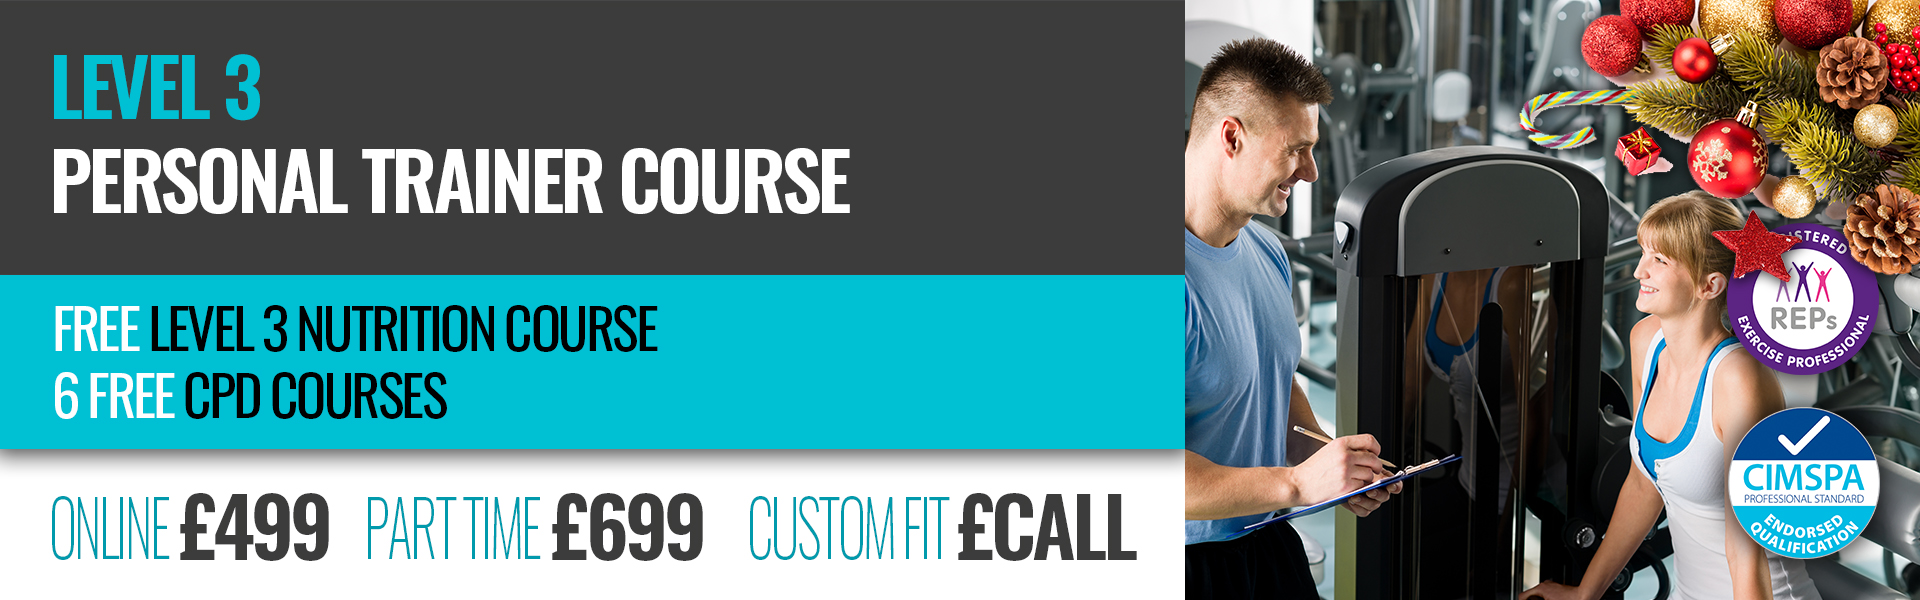 Level 3 Personal Trainer Course